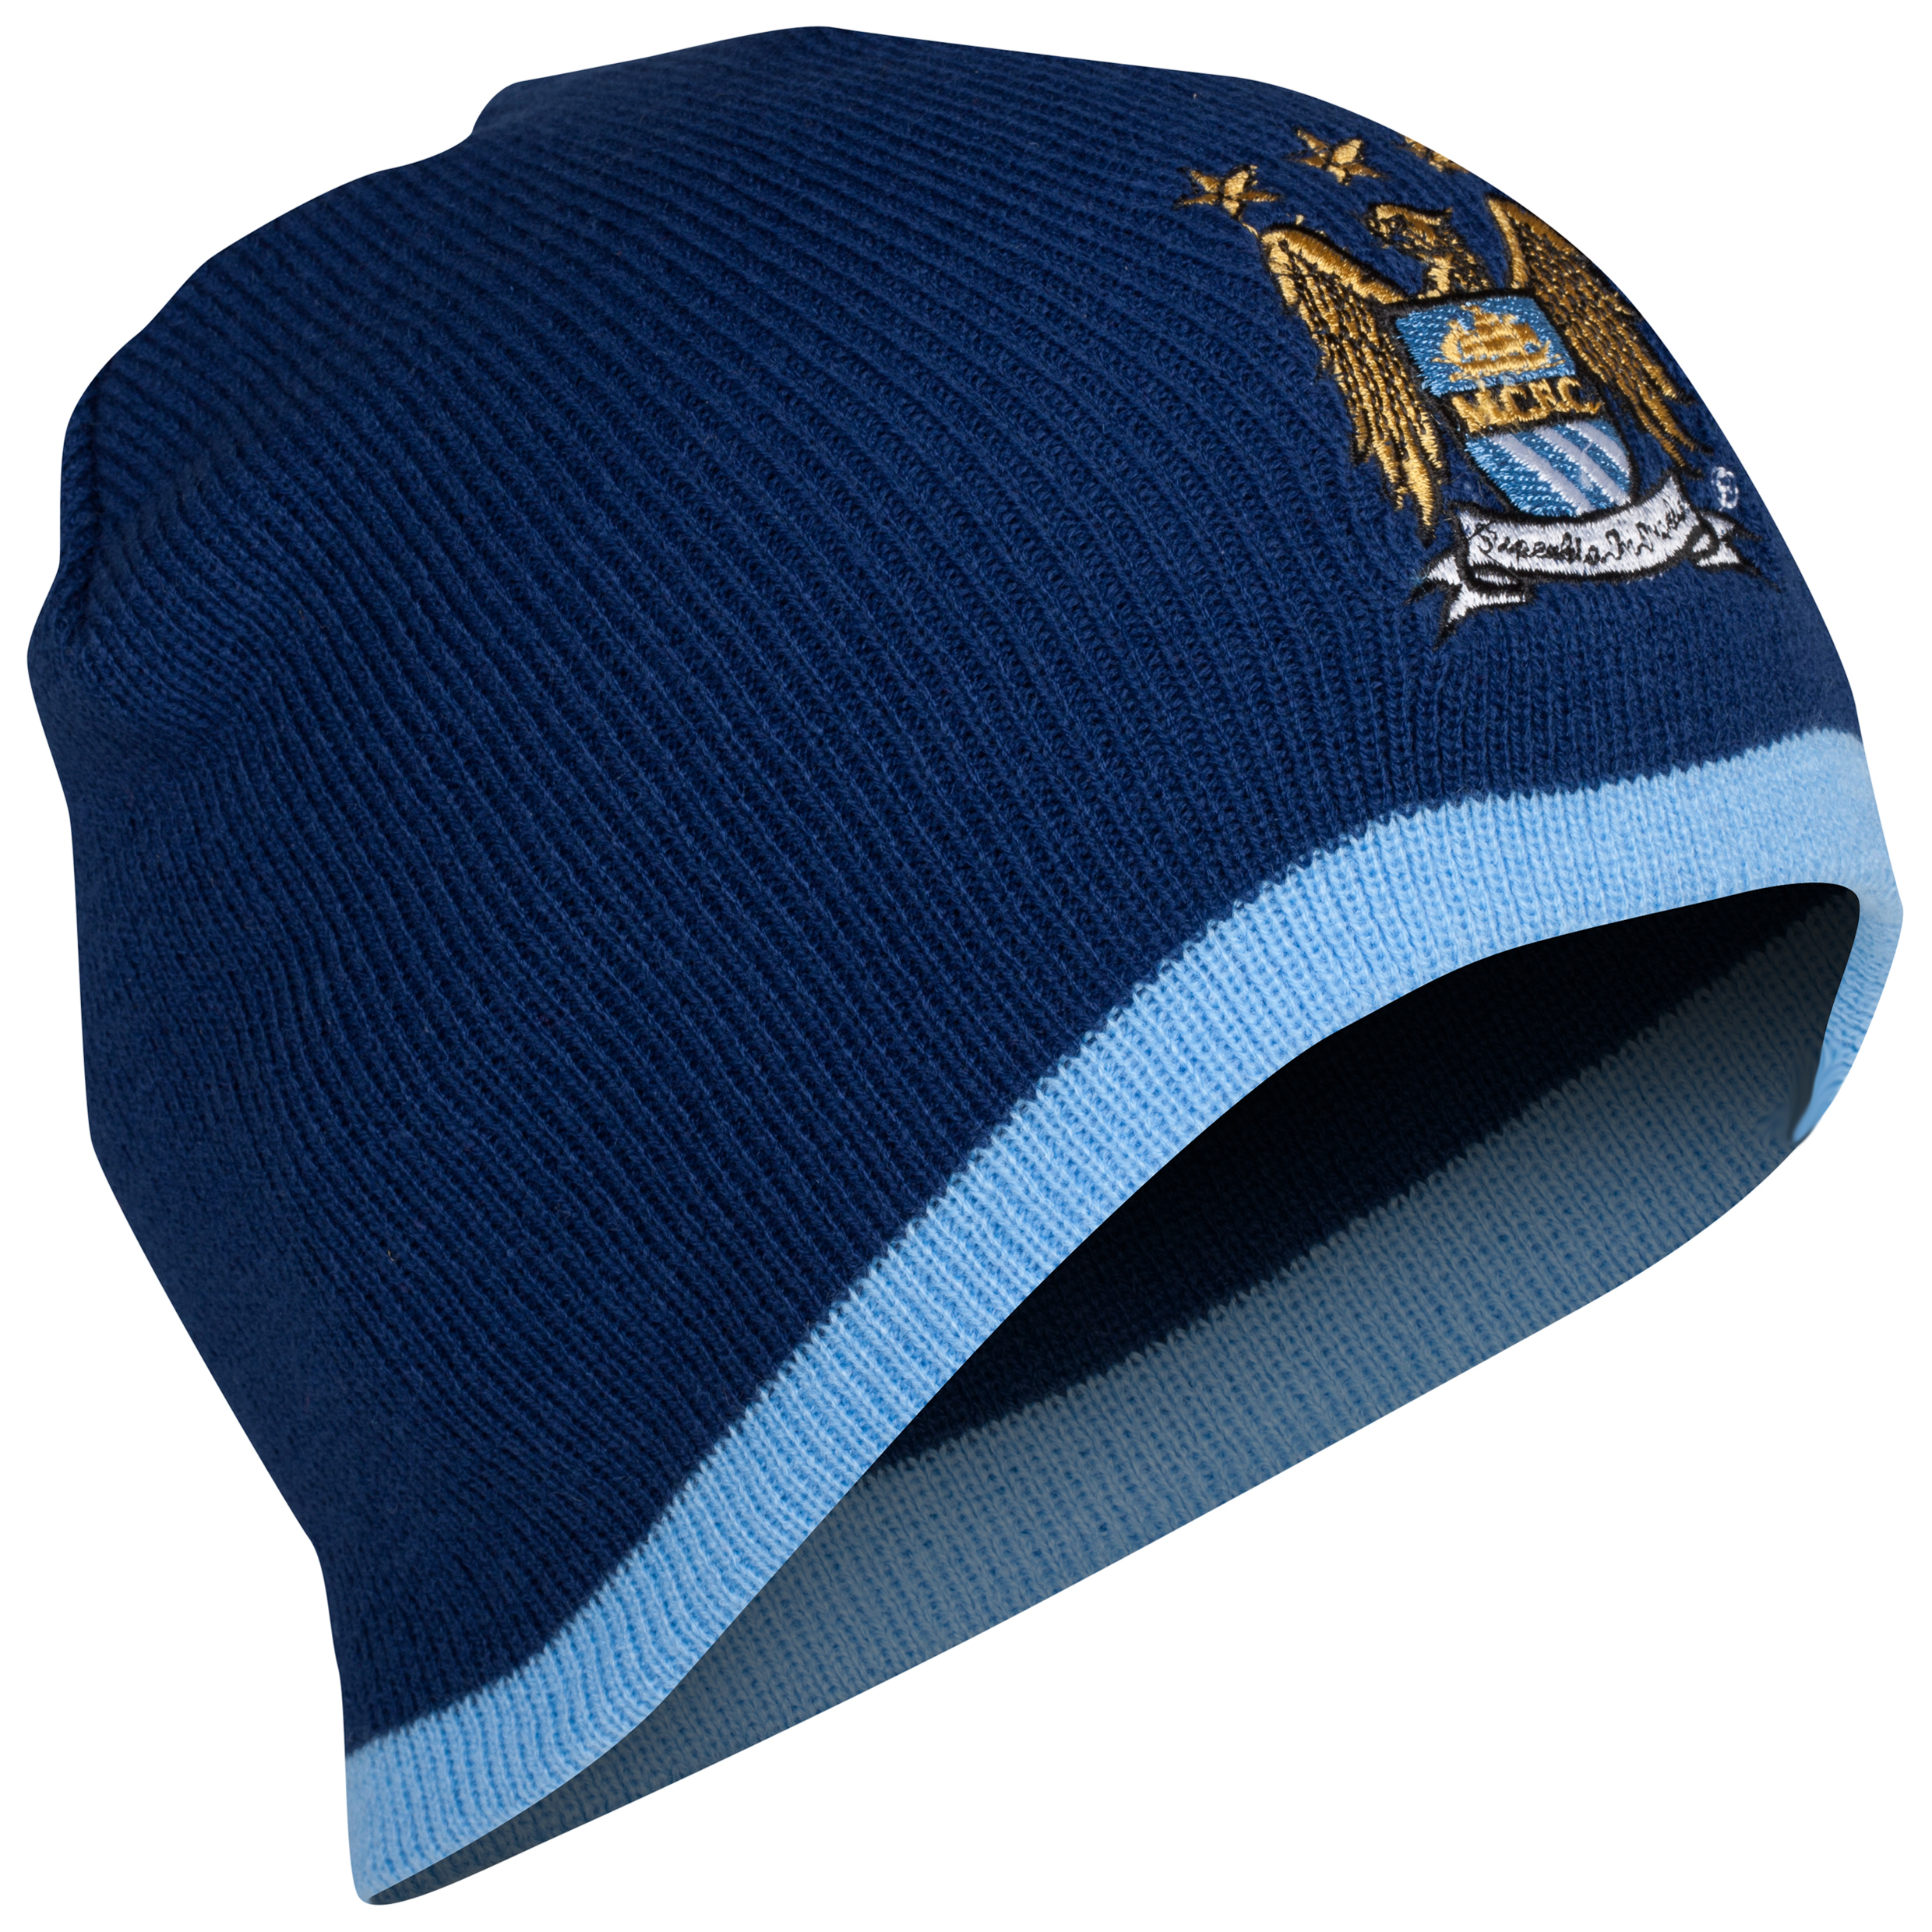 Manchester City Core Beanie Hat - Navy - Adult